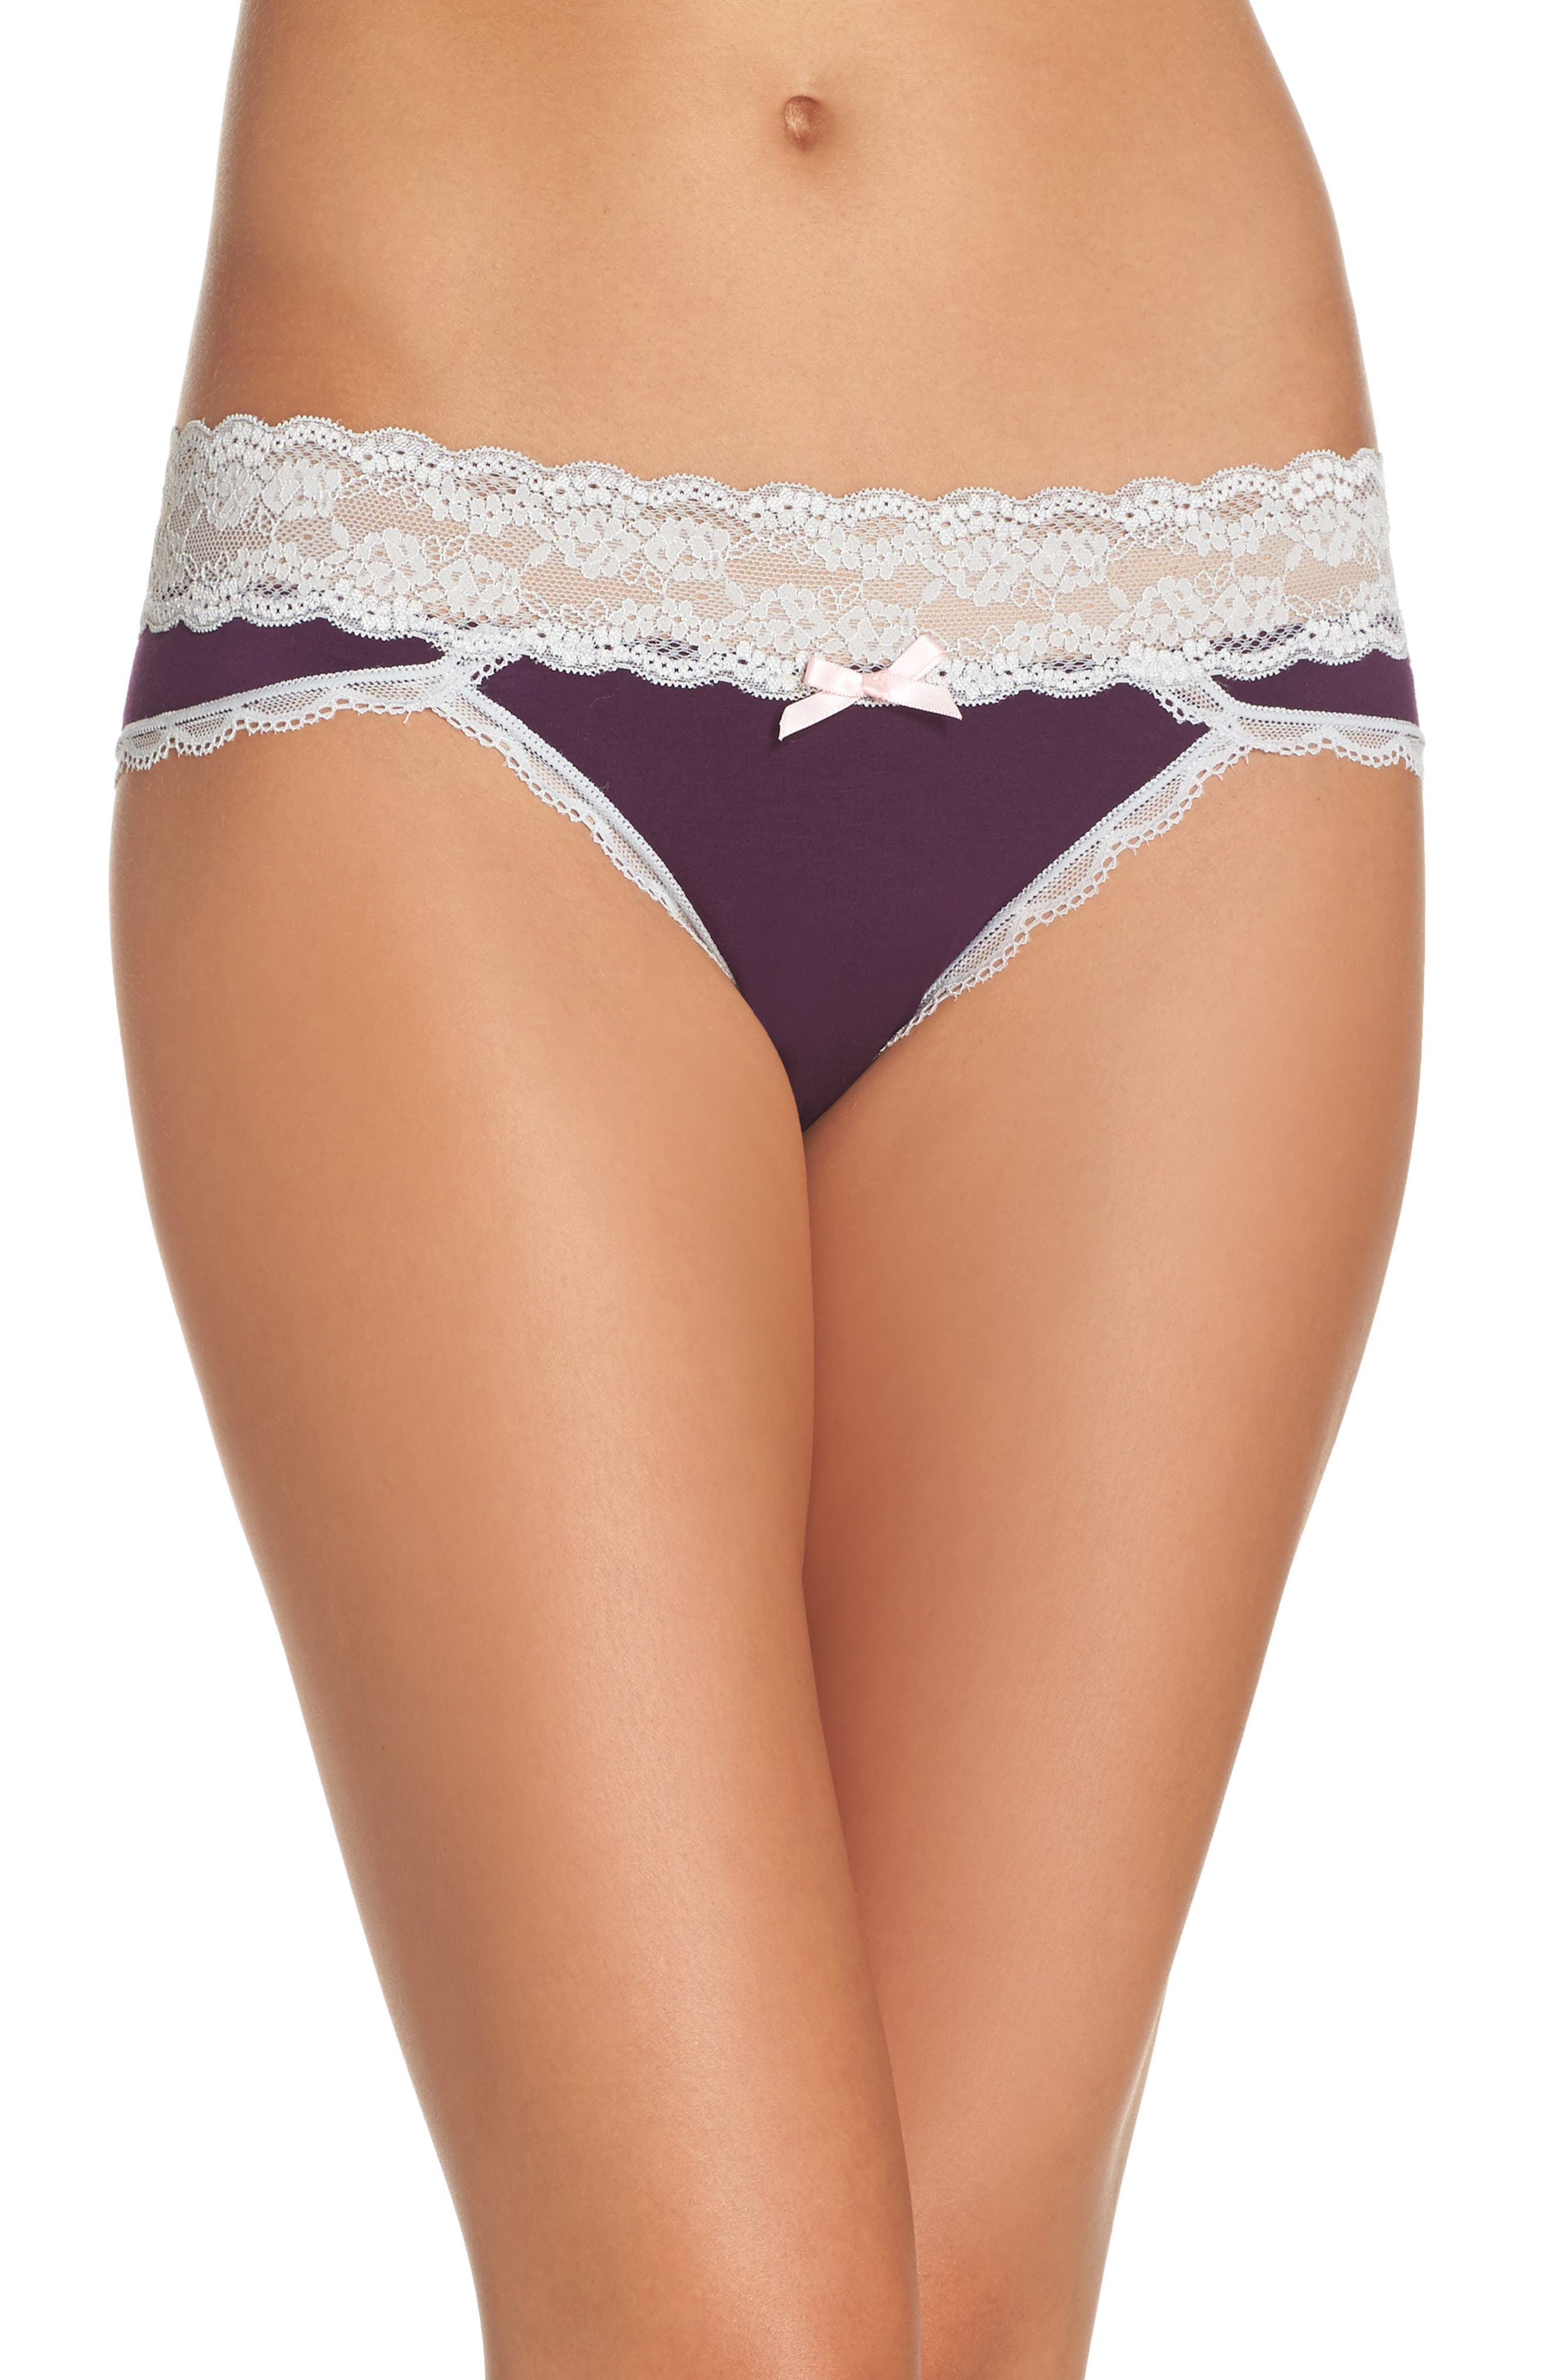 Main Image - Honeydew Intimates Lace Waistband Hipster Panties (3 for $33)